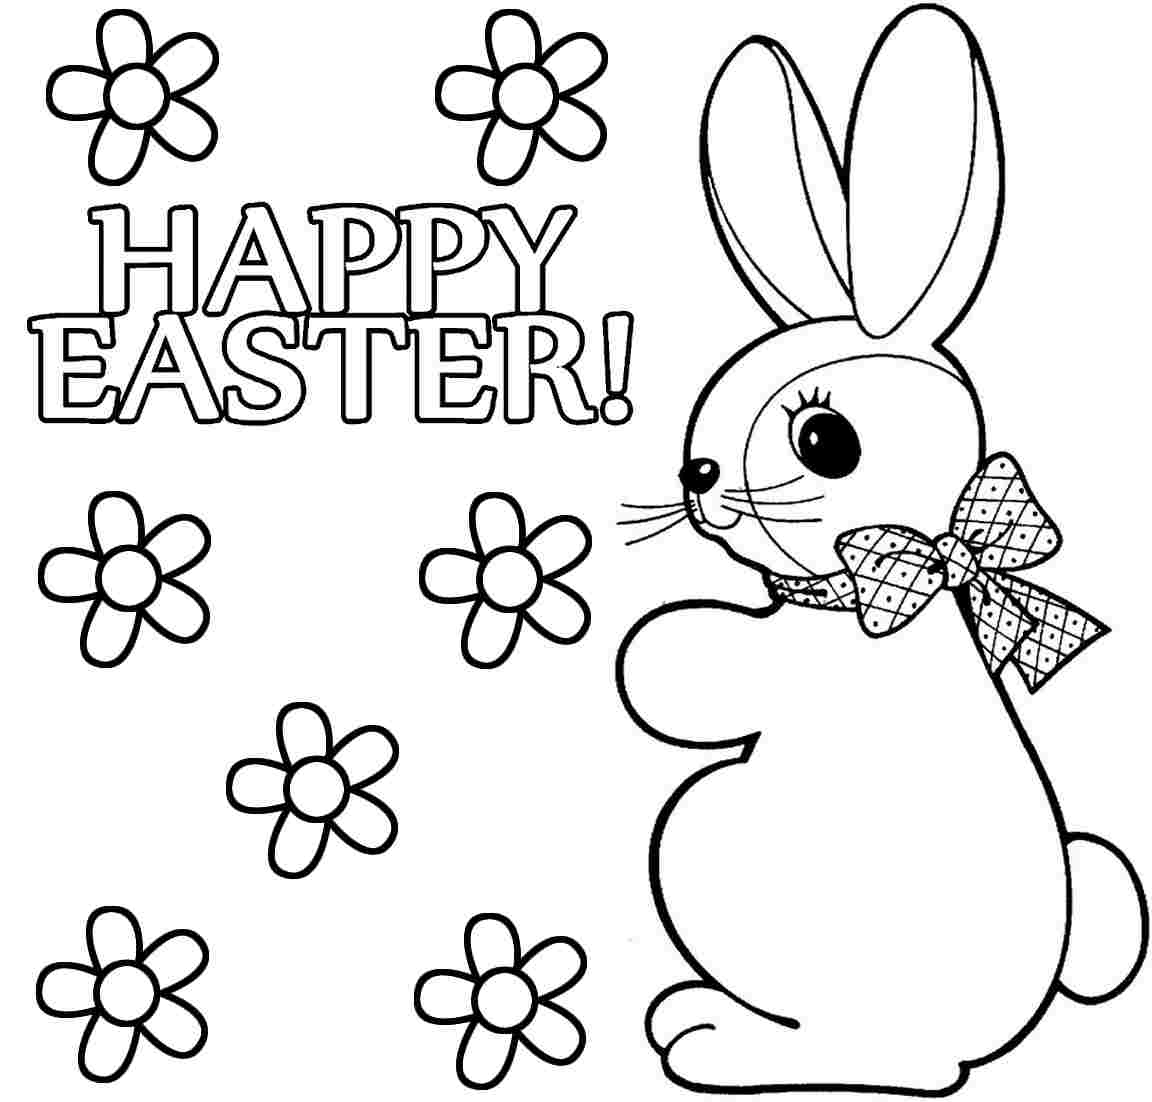 Brilliant Easter Bunny Coloring Pages Printable with within to Print Gallery Of Easter Egg Designs Coloring Pages to Print